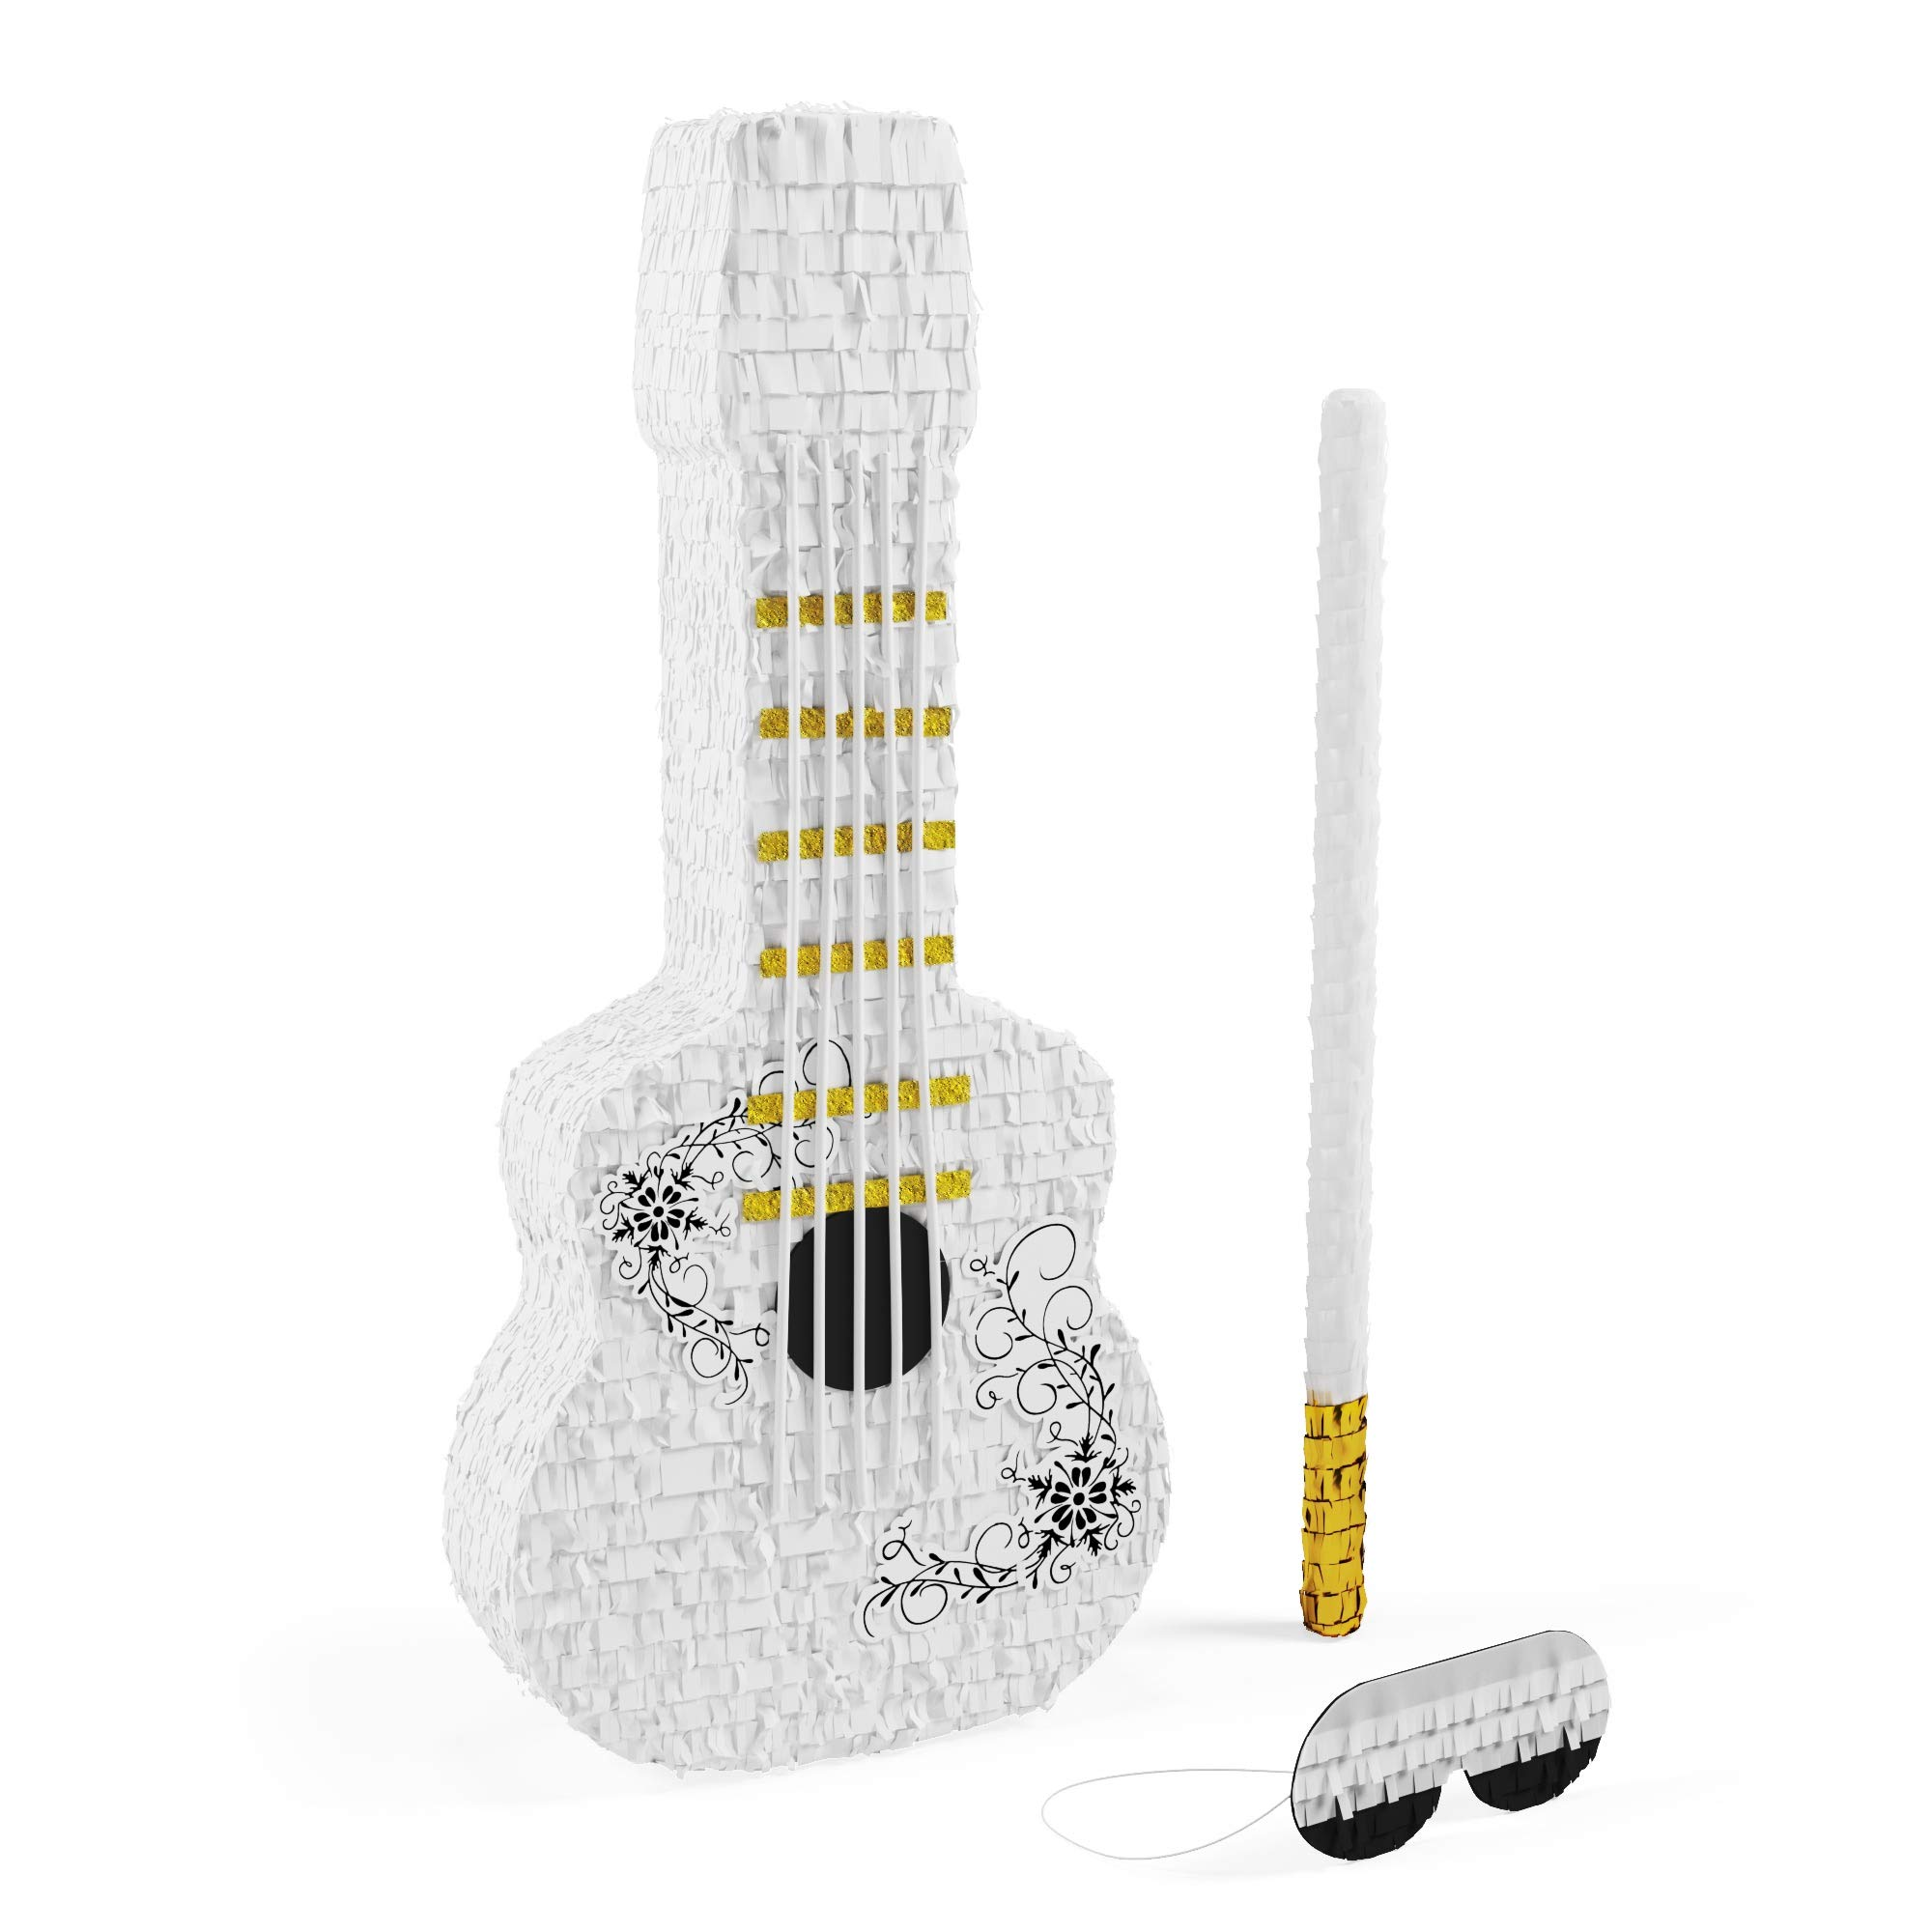 Guitar Piñata Bundle with a Blindfold and Bat ― Throw a Pinata Party While Stuck at Home ― The REAL Large Size Piñata that Holds Up to 5 lb of Candy For Birthday Parties, Kids Carnival and Related Eve